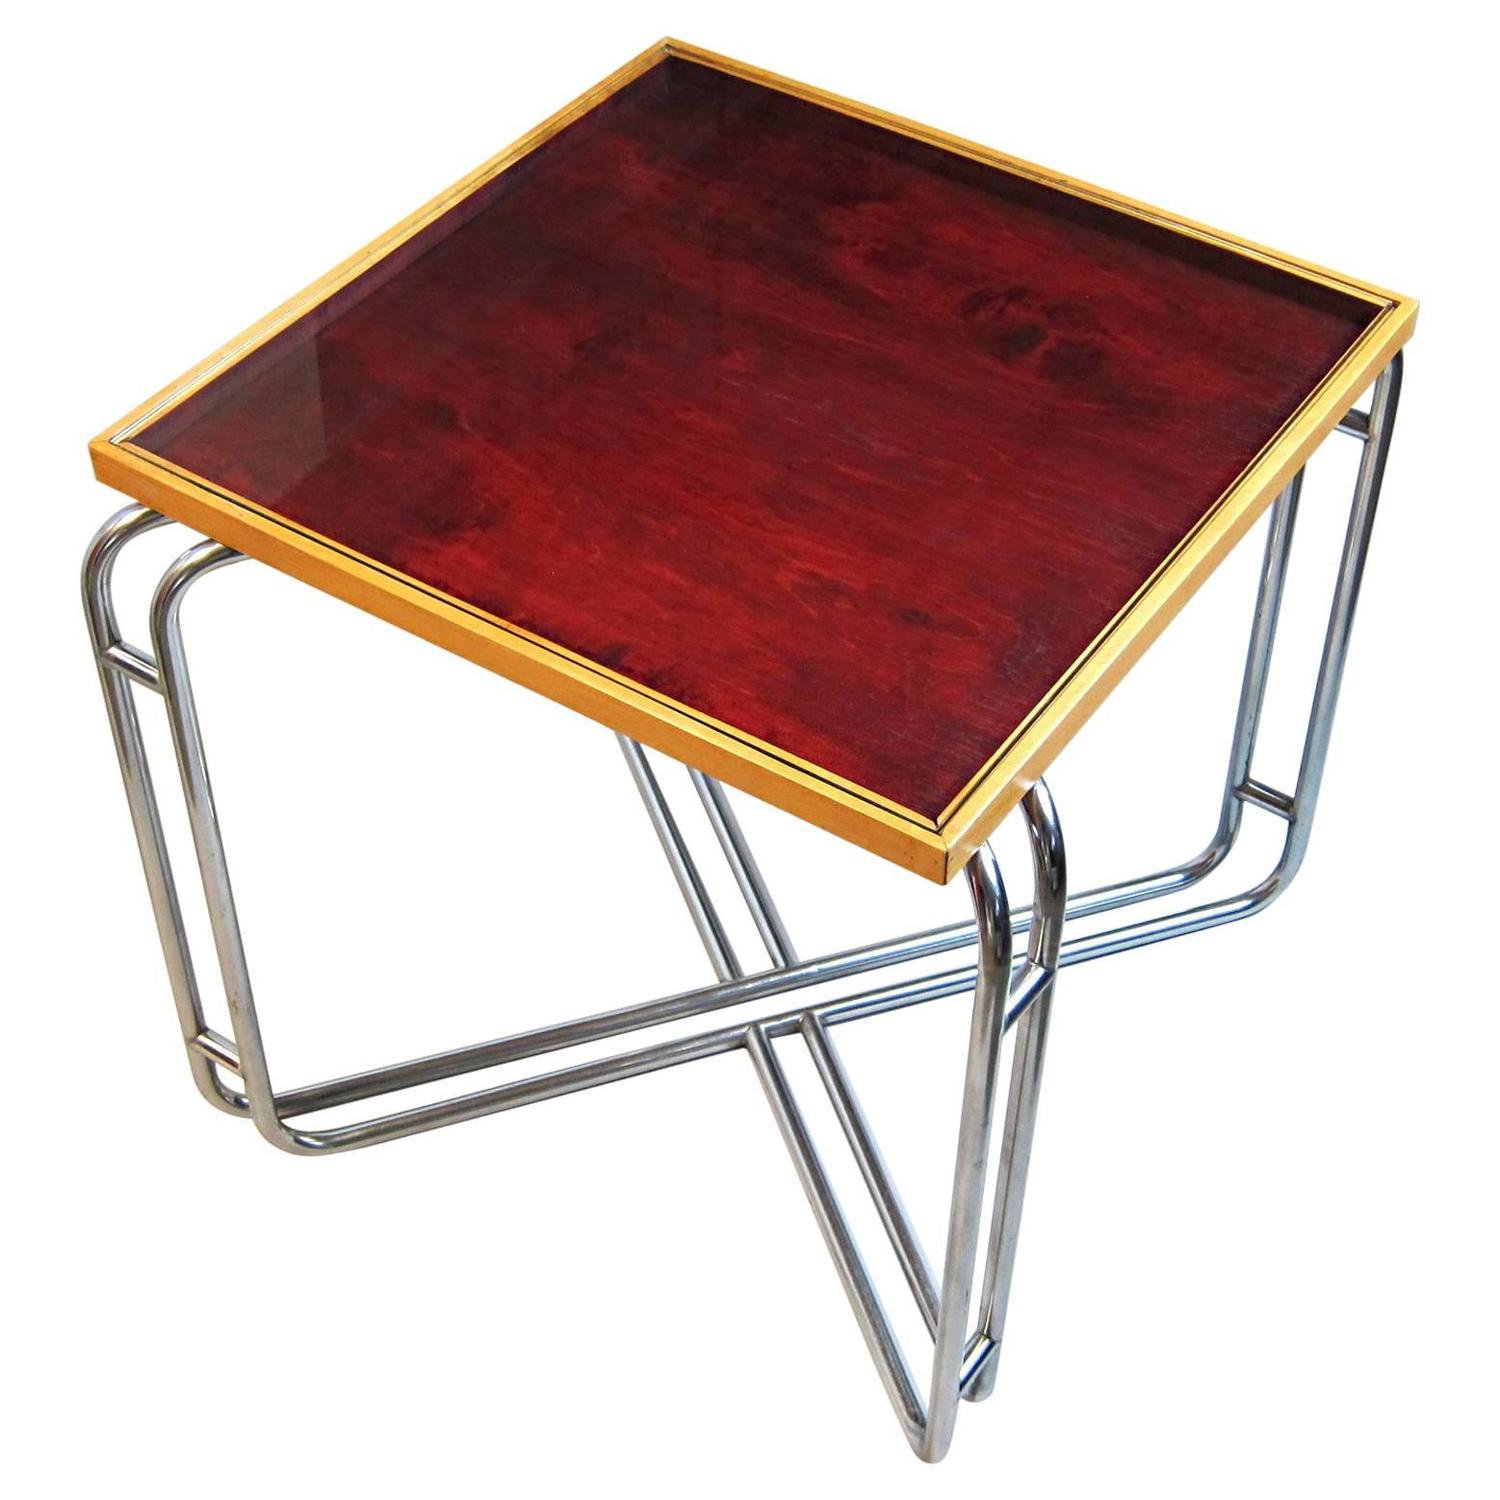 Kem Weber Style Showcase Top Coffeetable 1930s For Sale At 1stdibs